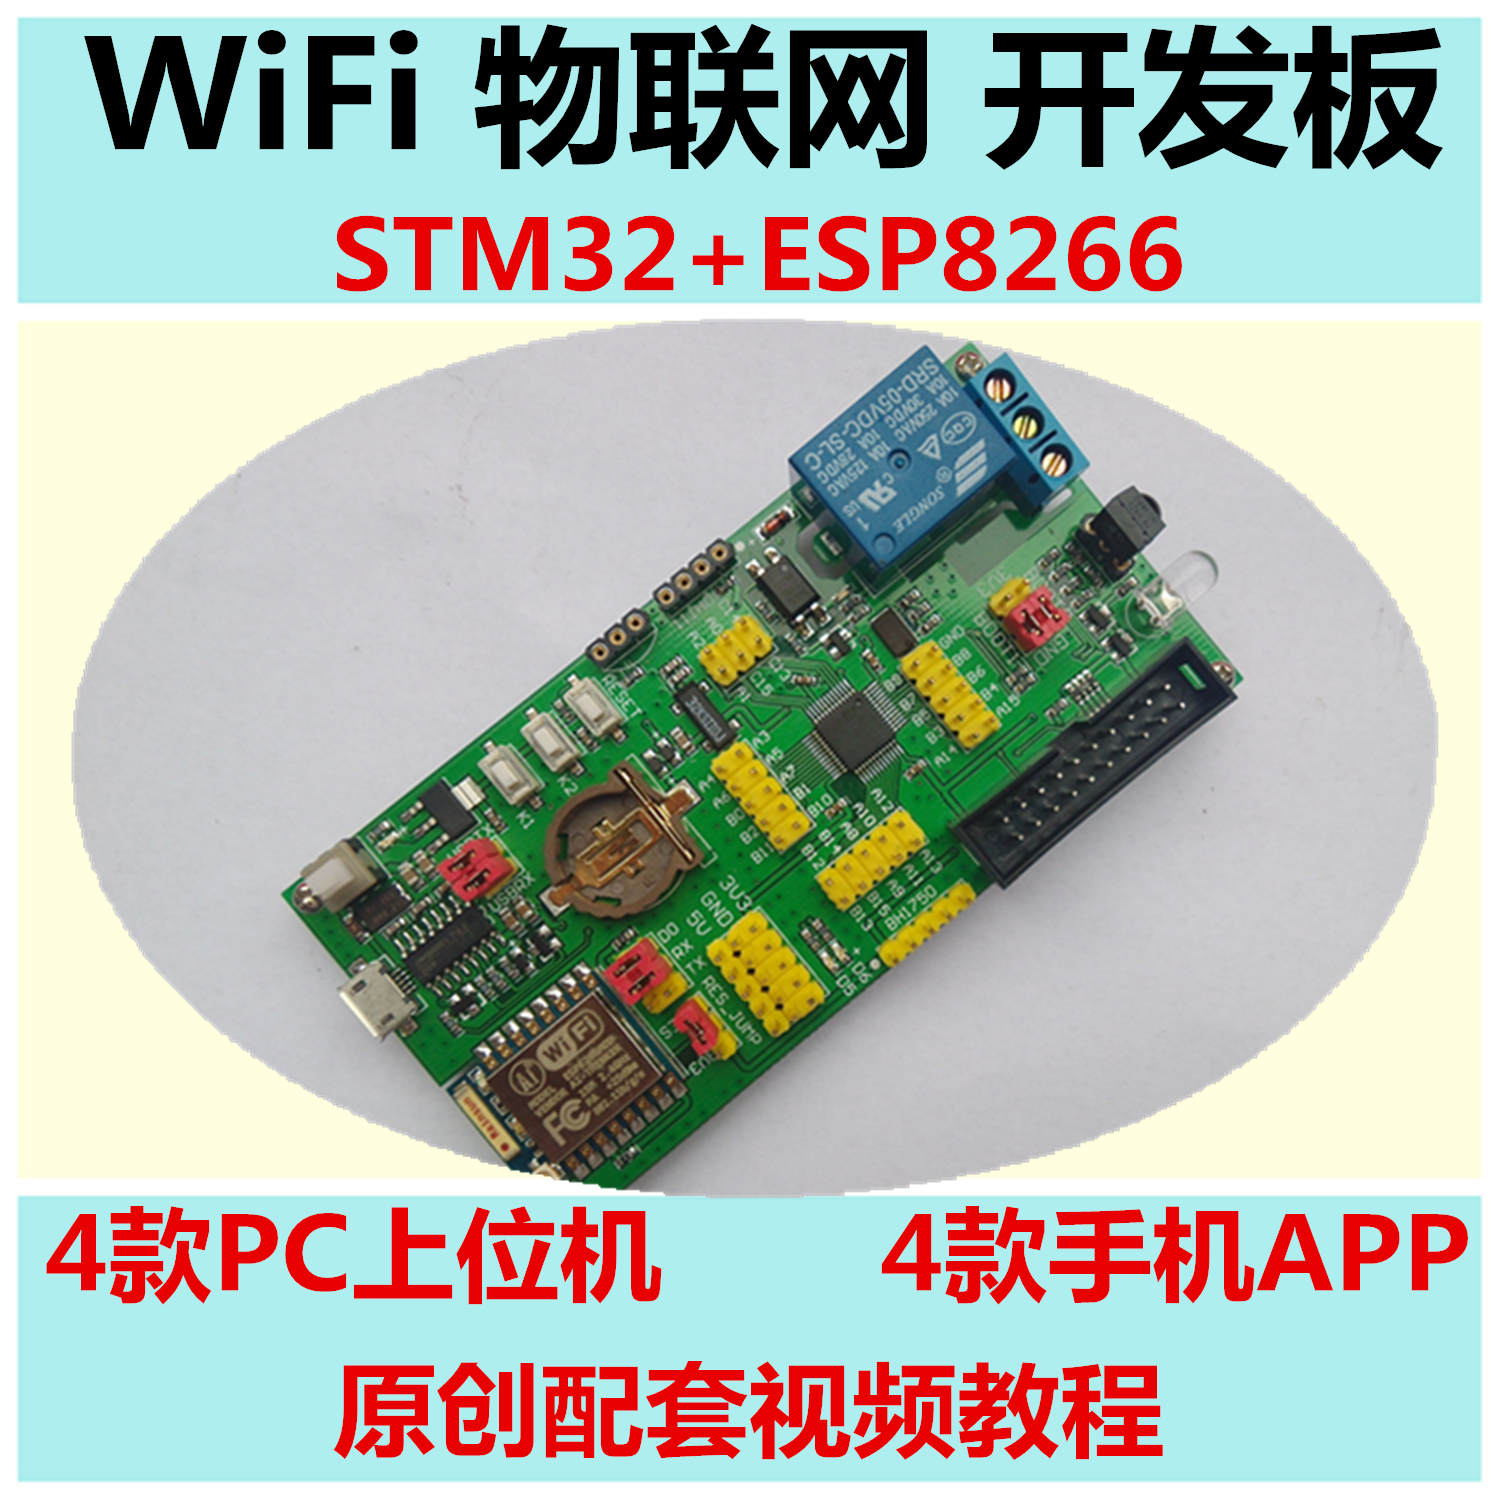 Internet of things WIFI development board remote control cloud server STM32 development board ESP8266 gprs gsm sms development board communication module m26 ultra sim900 stm32 internet of things with positioning